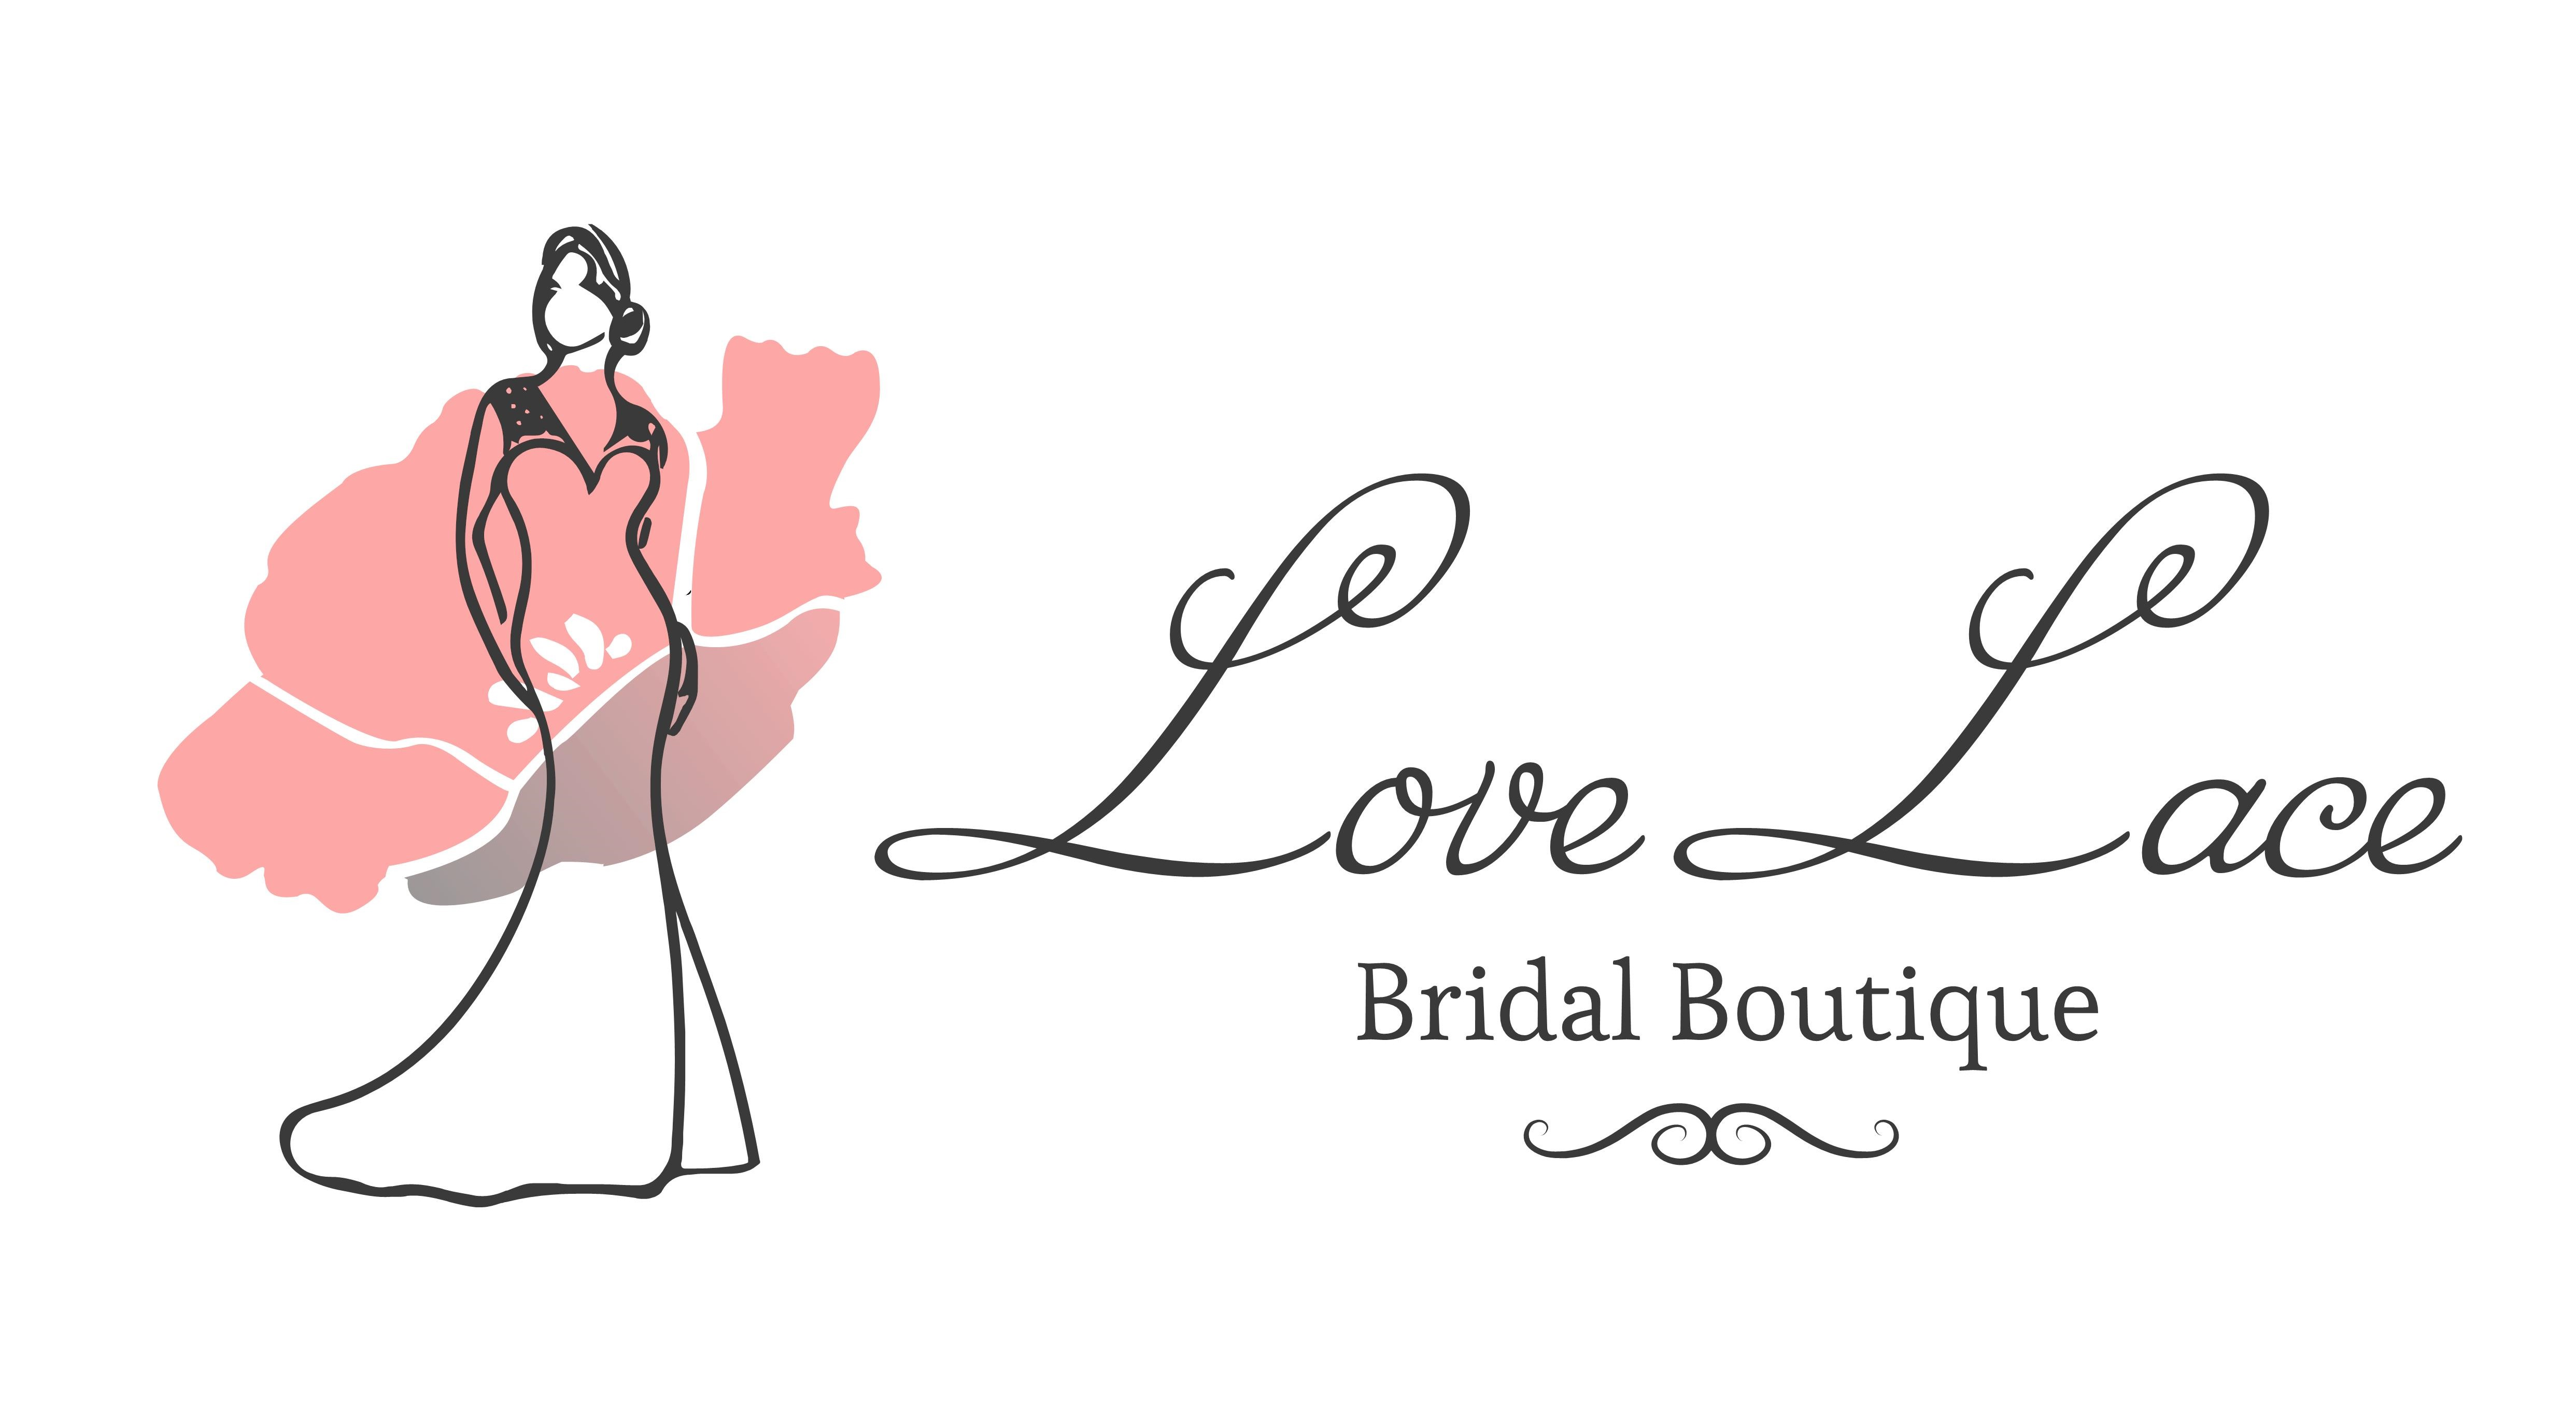 Love Lace Bridal Boutique